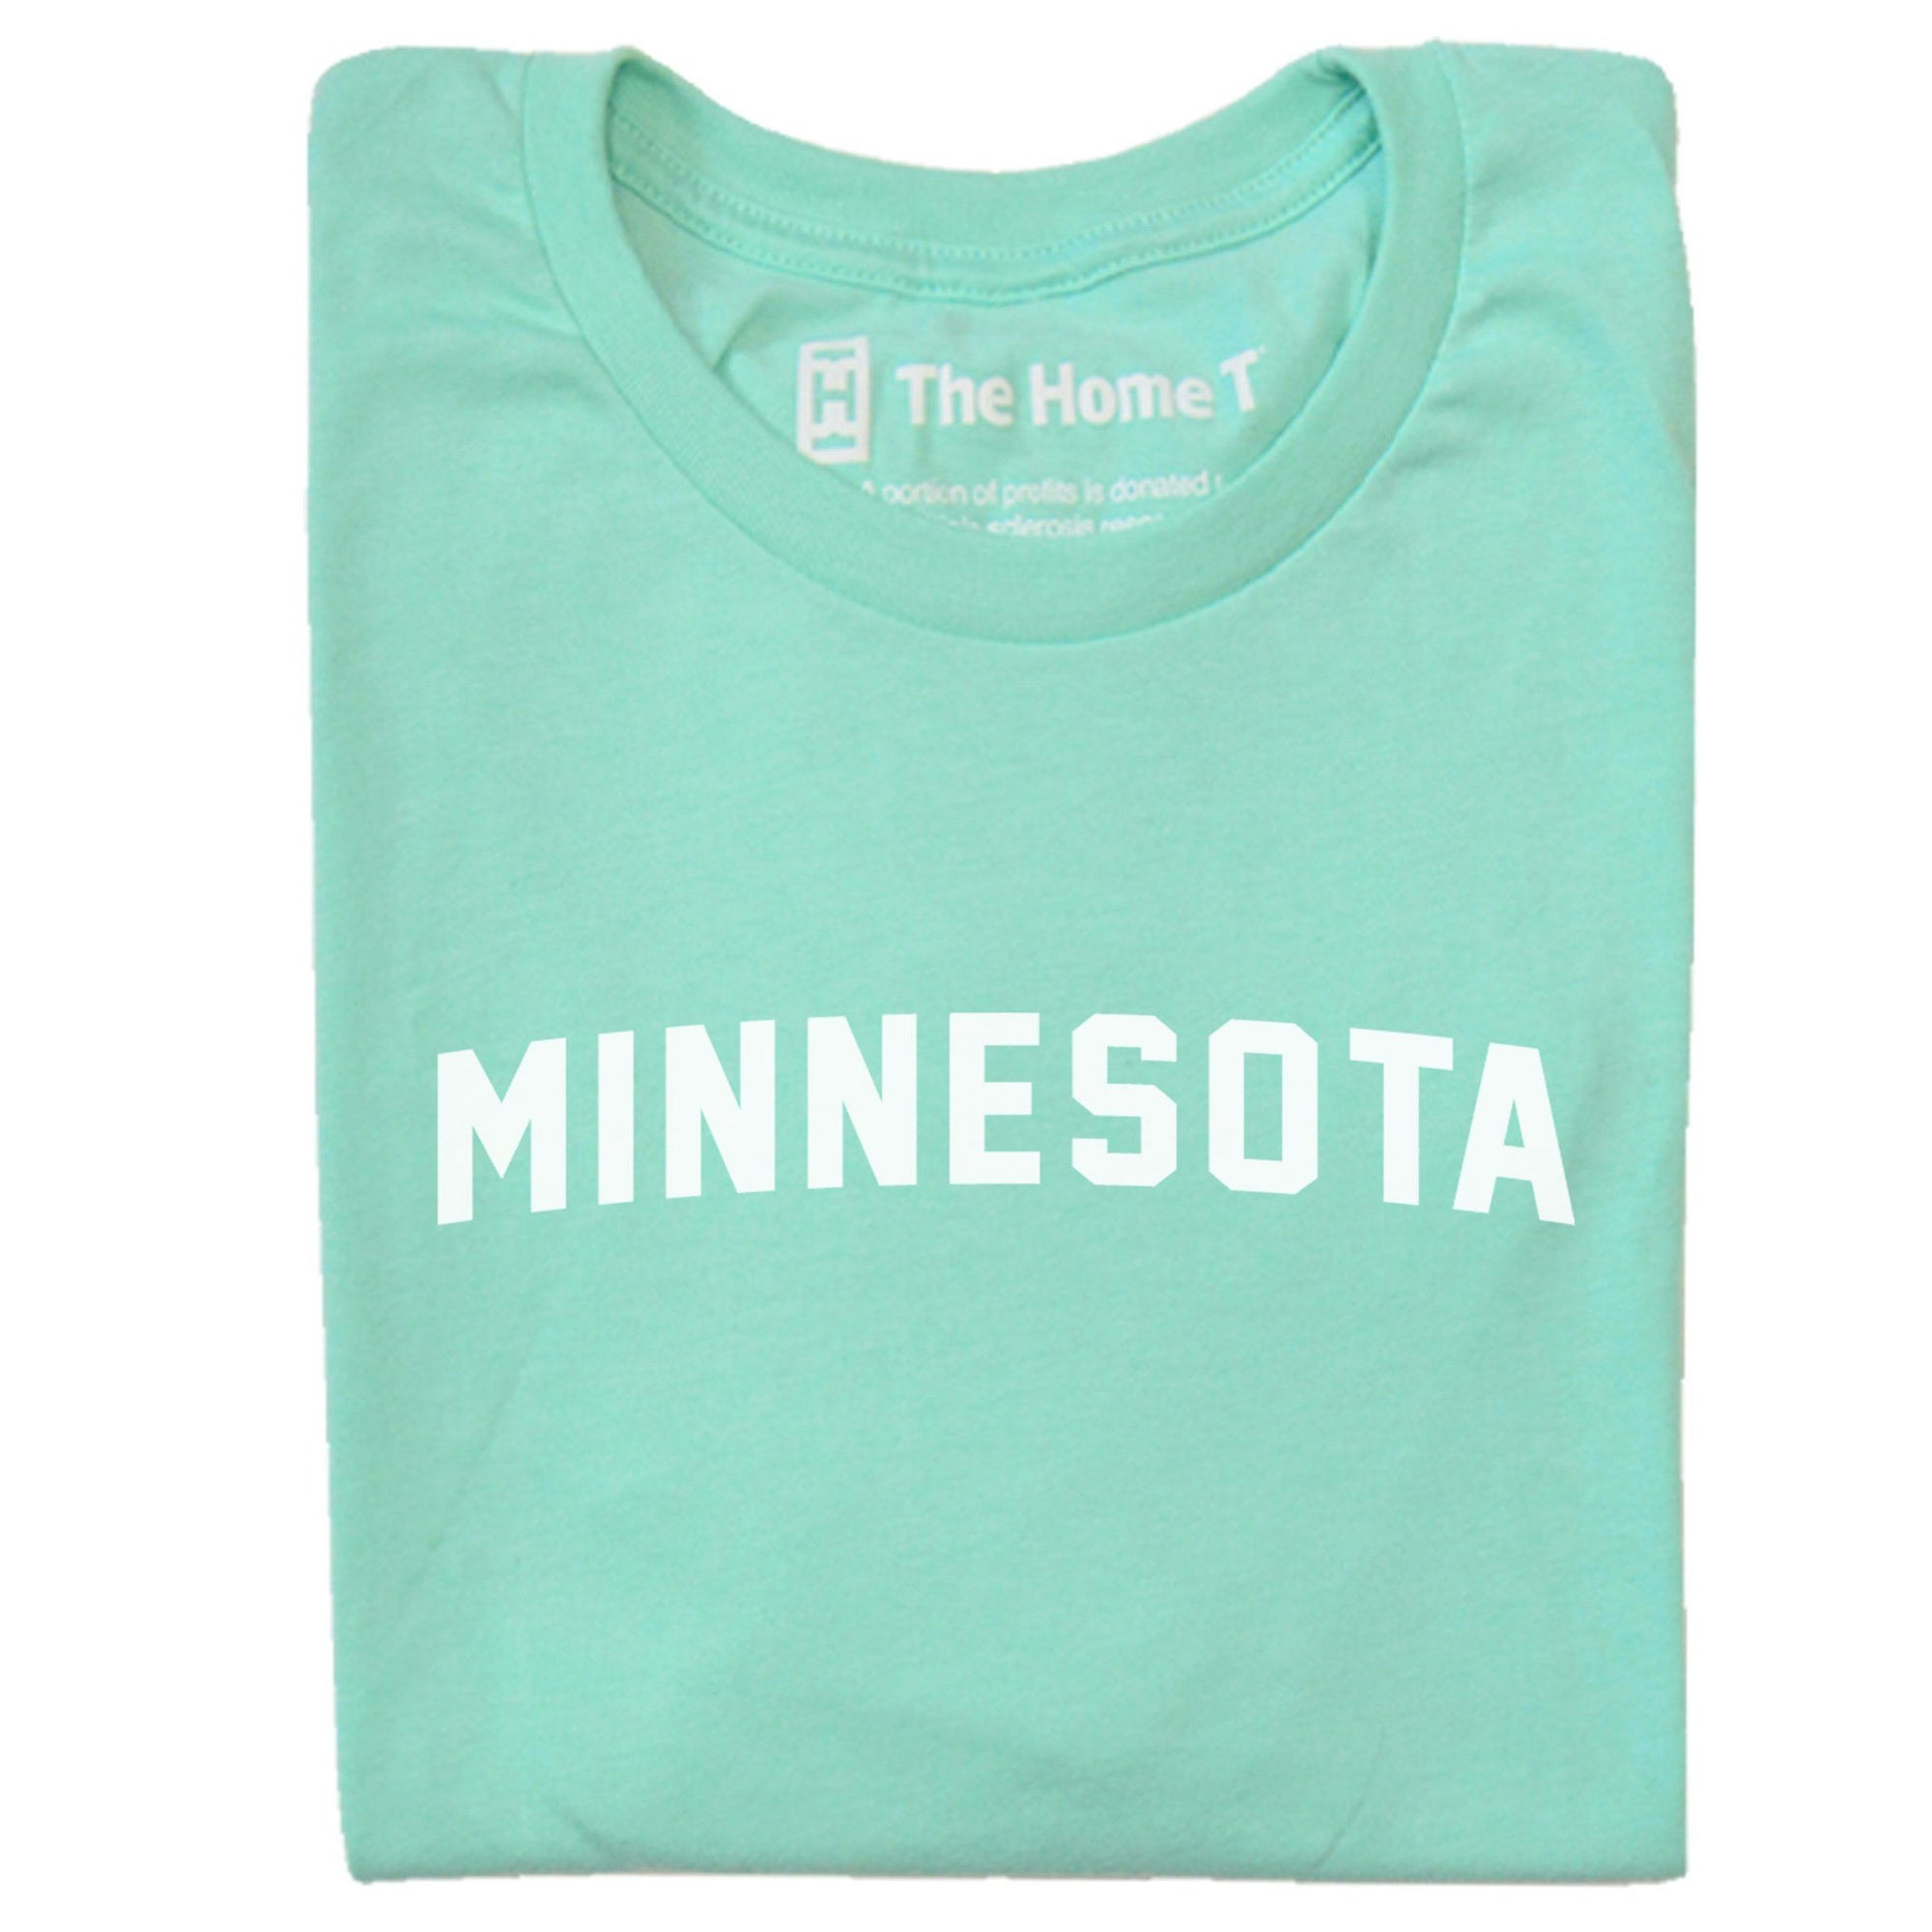 Minnesota Arched The Home T XS Mint